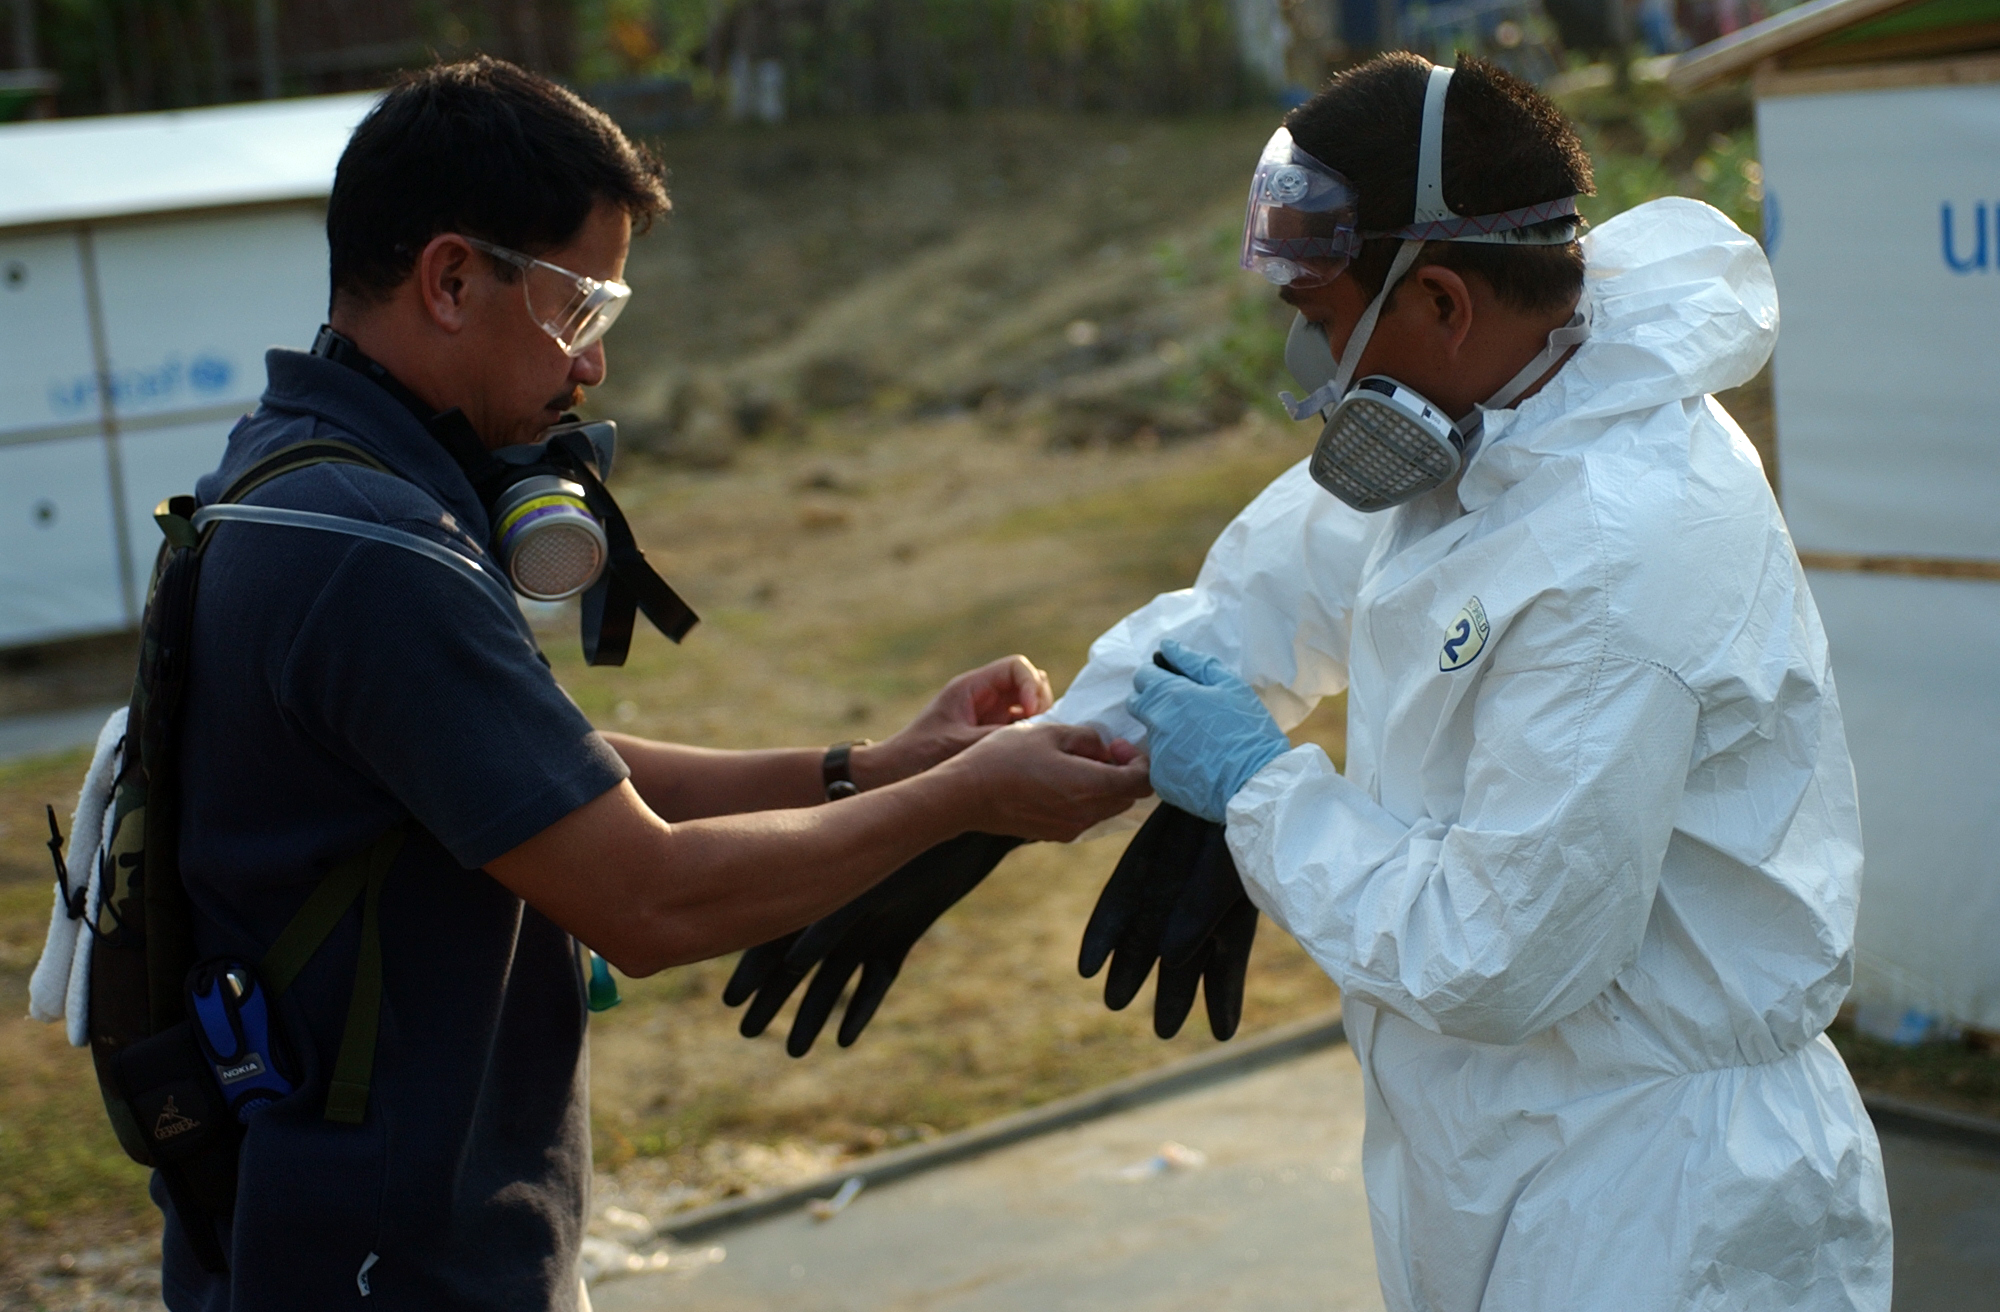 US Navy 050309-N-8796S-031 Chief Hospital Corpsman Alberto Redublo, left, helps Hospital Corpsman 2nd Class Richard Cabatit as he dons his personal protective equipment for spraying pesticides.jpg